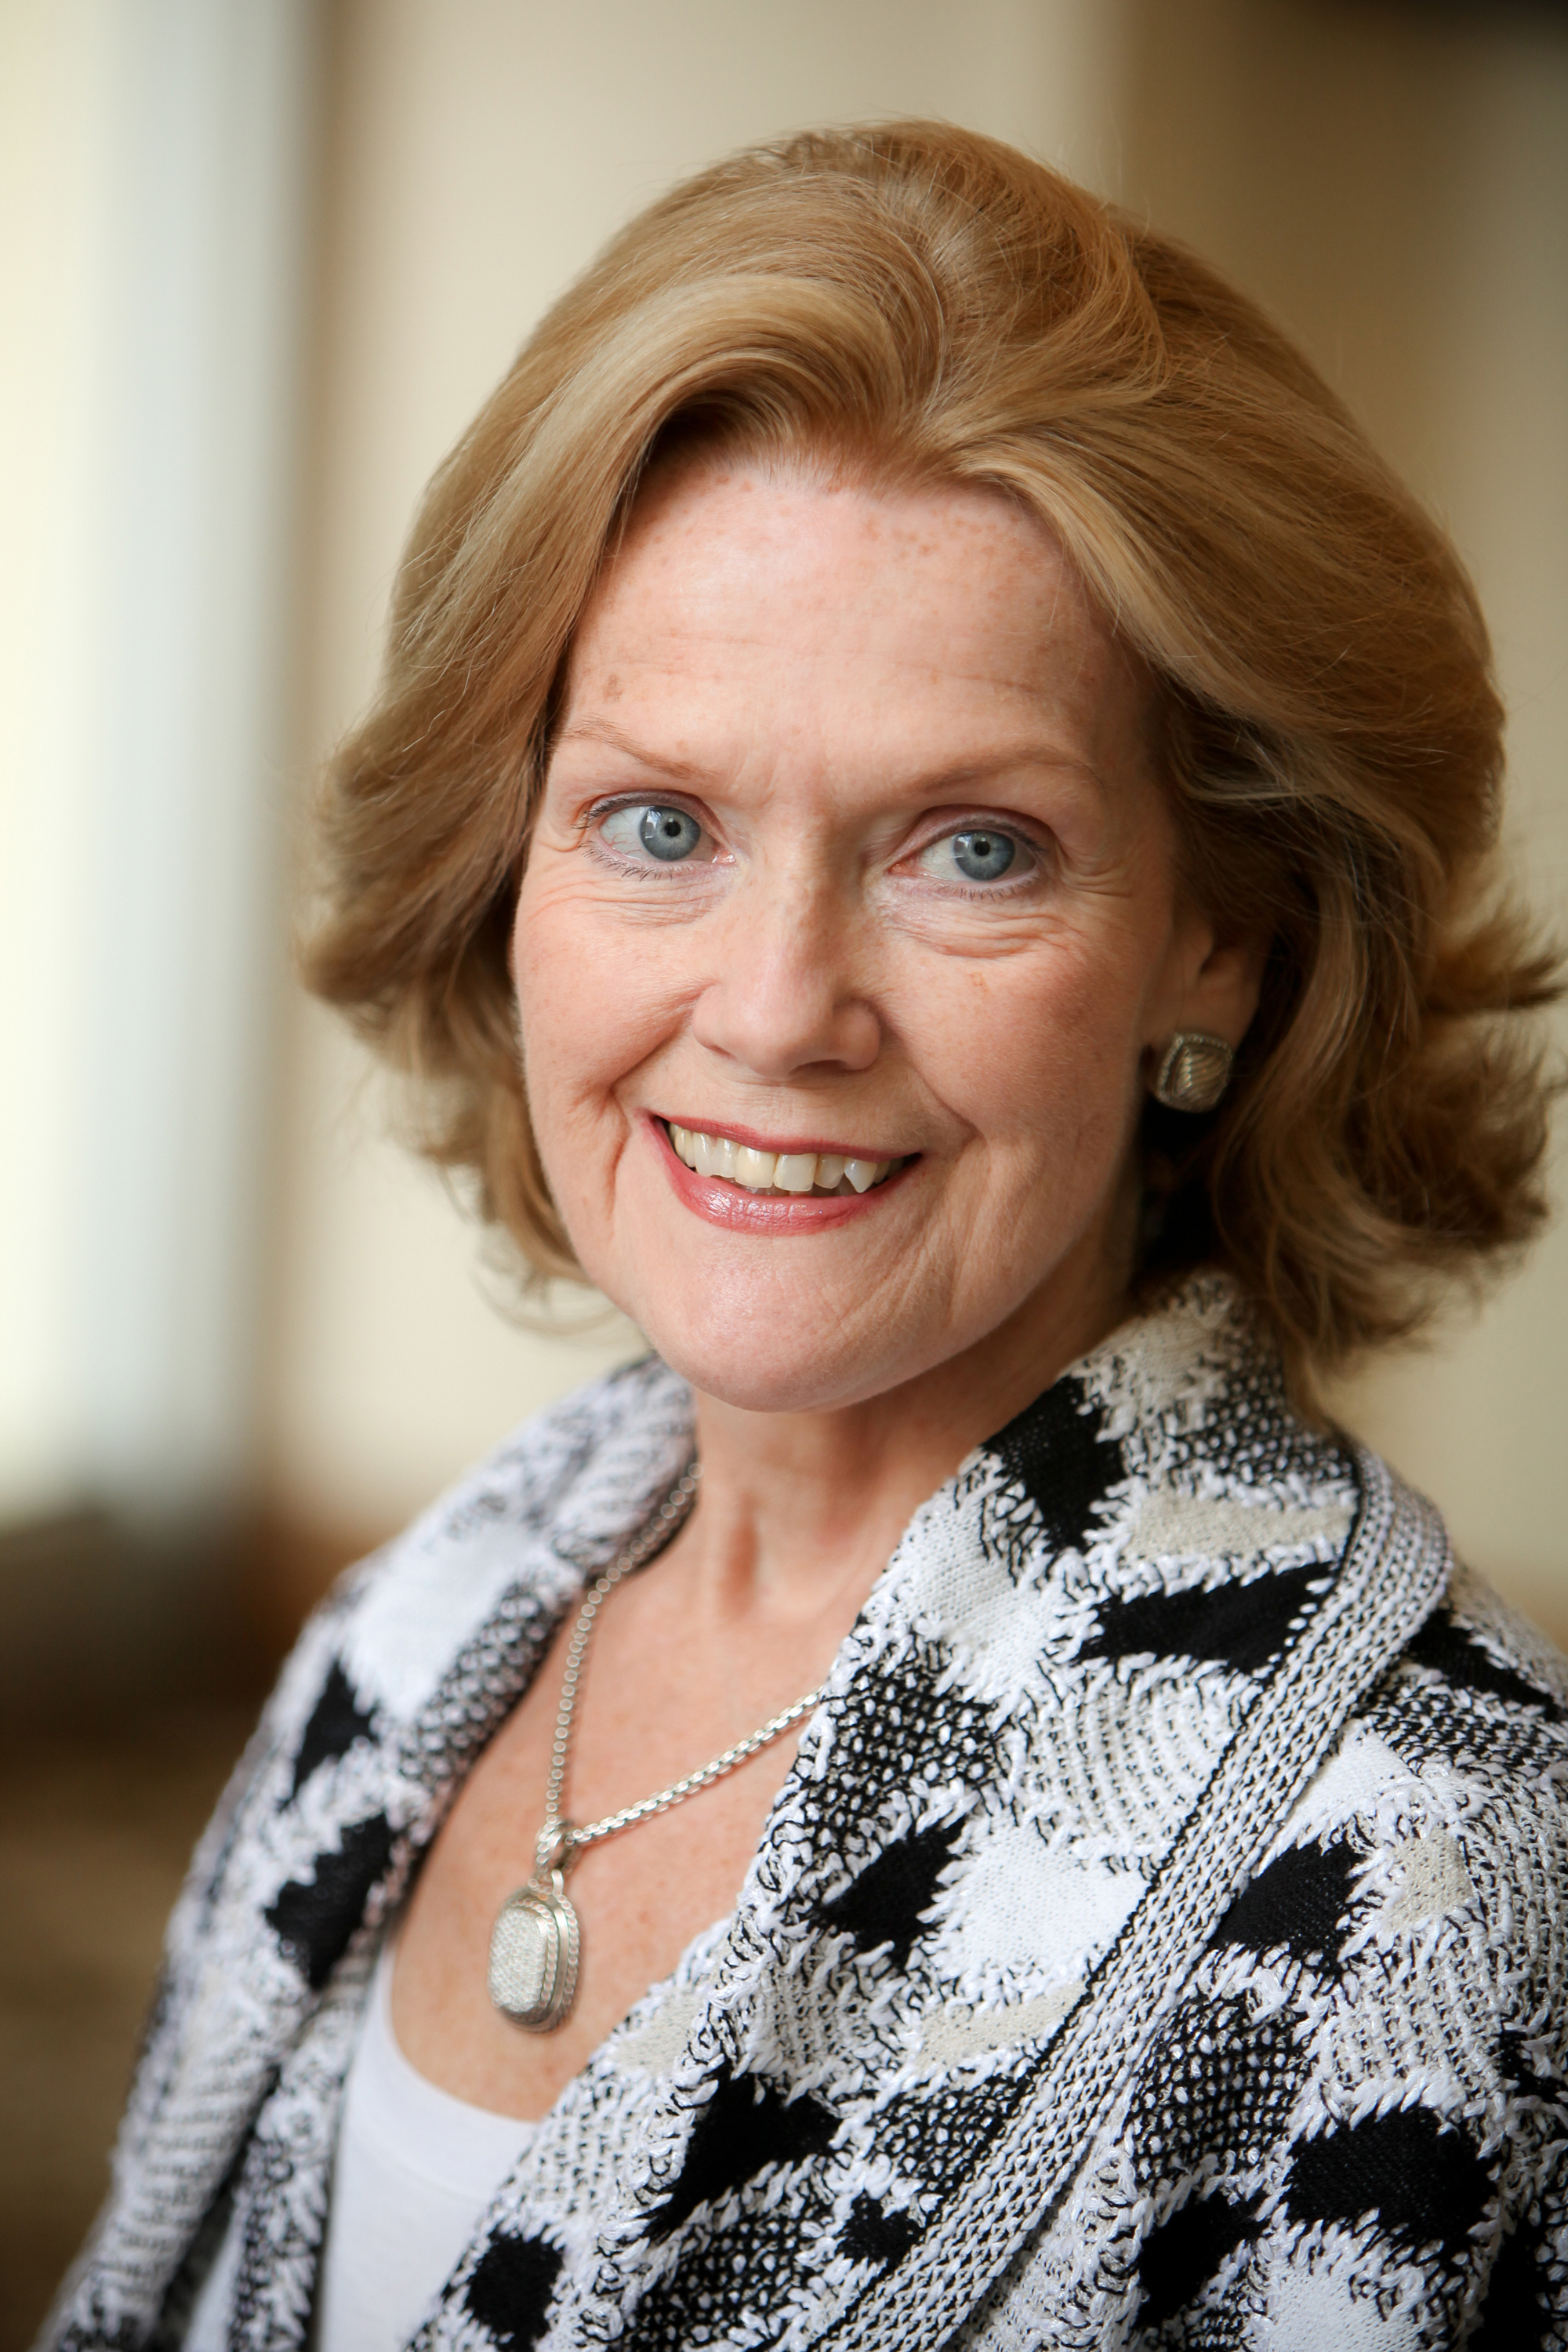 Judith Nocito will retire from Alcoa after a 34-year career with the company. (Photo: Business Wire)